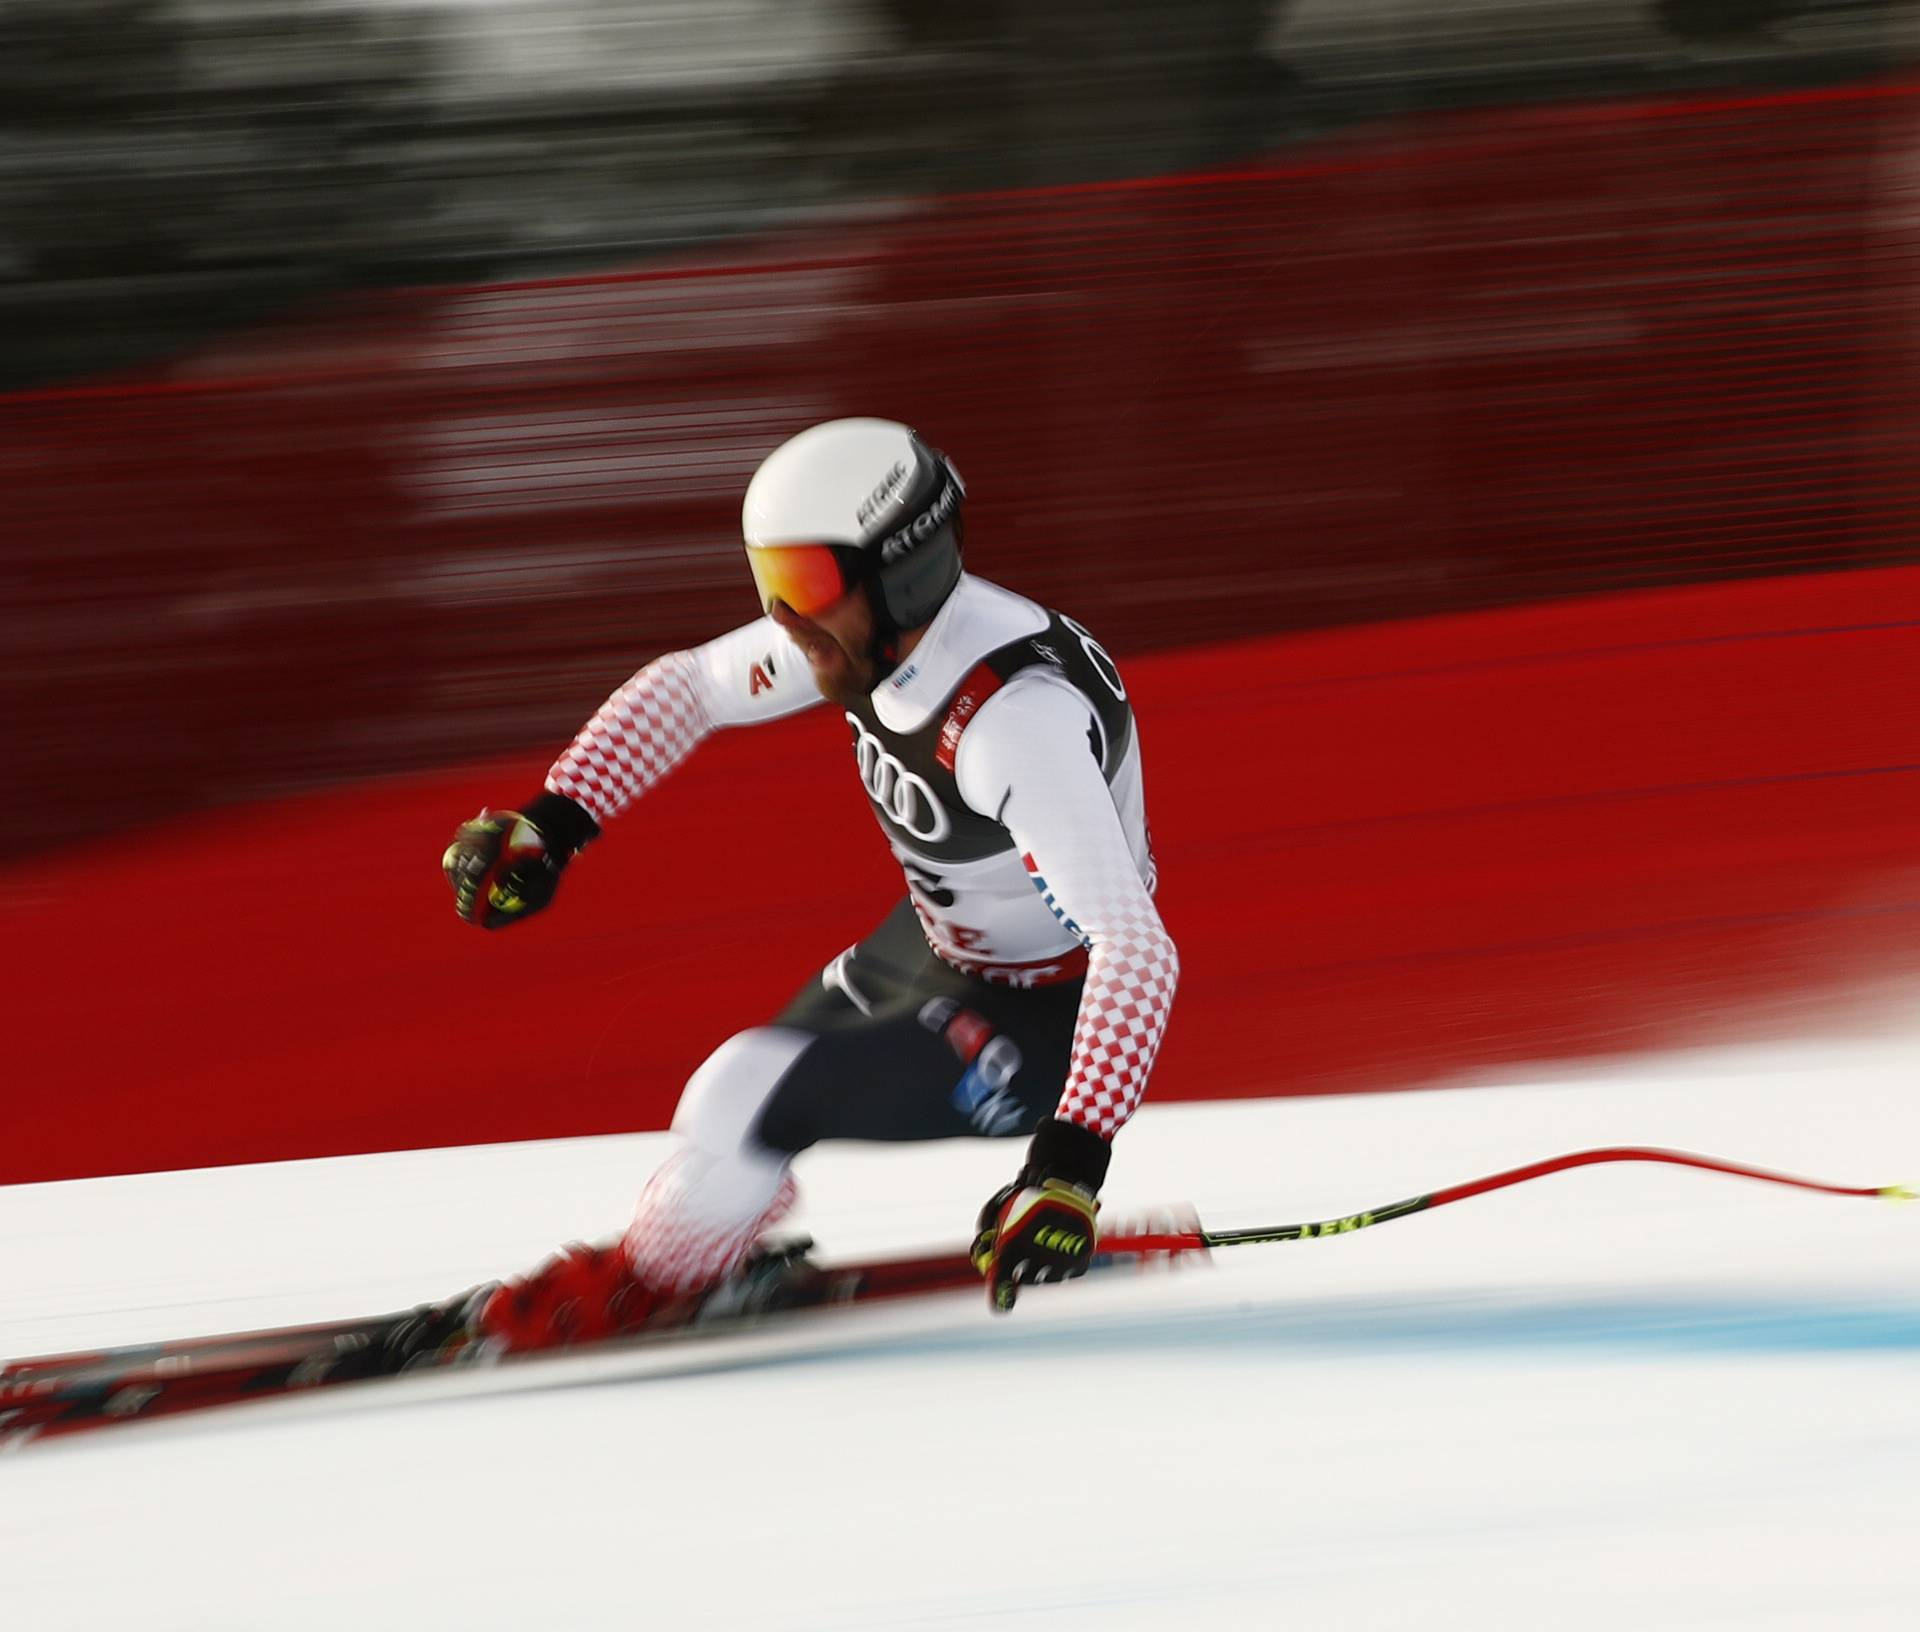 Alpine Skiing - FIS Alpine World Ski Championships - Men's Super G